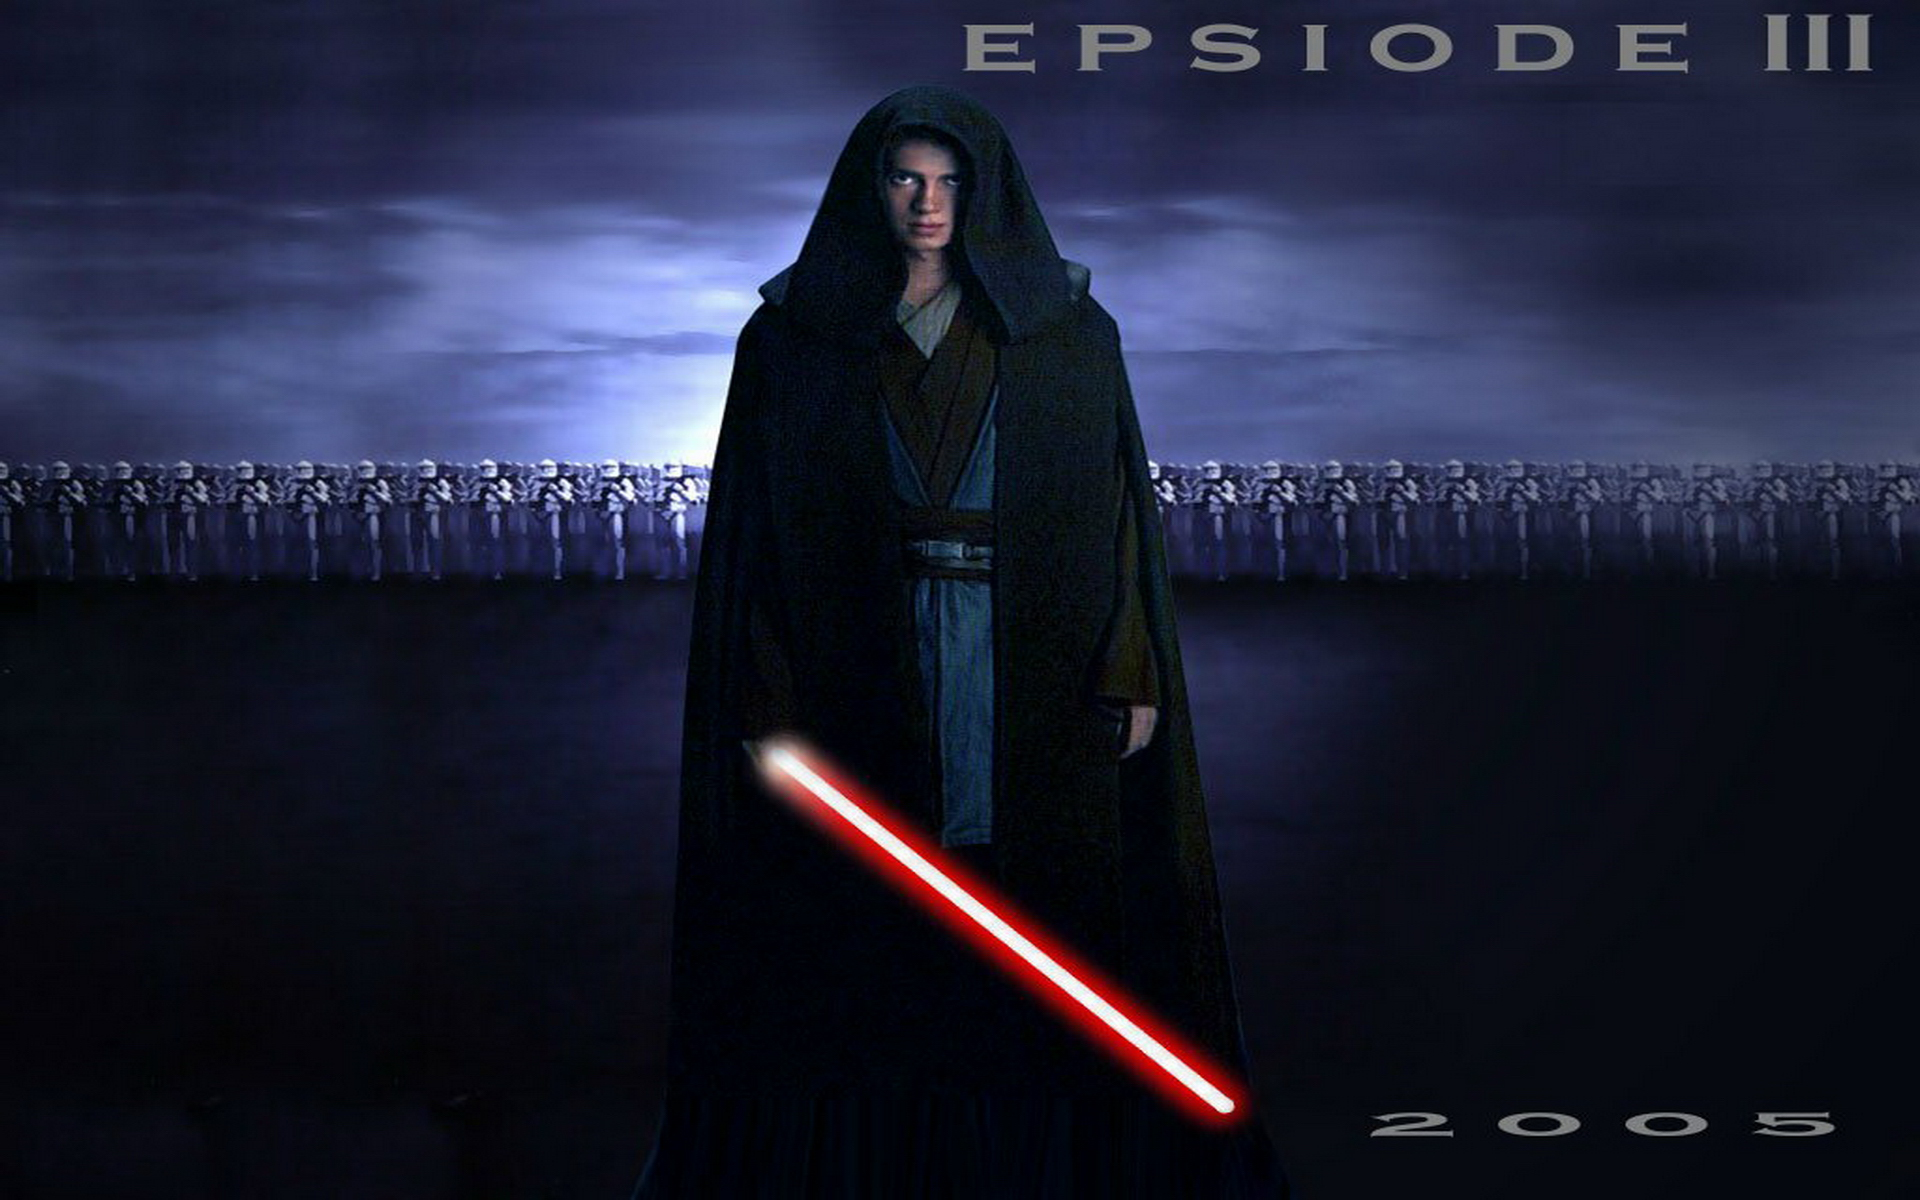 Revenge Of The Sith Wallpaper Anakin Skywalker Dark Vador 1920x1200 Wallpaper Teahub Io